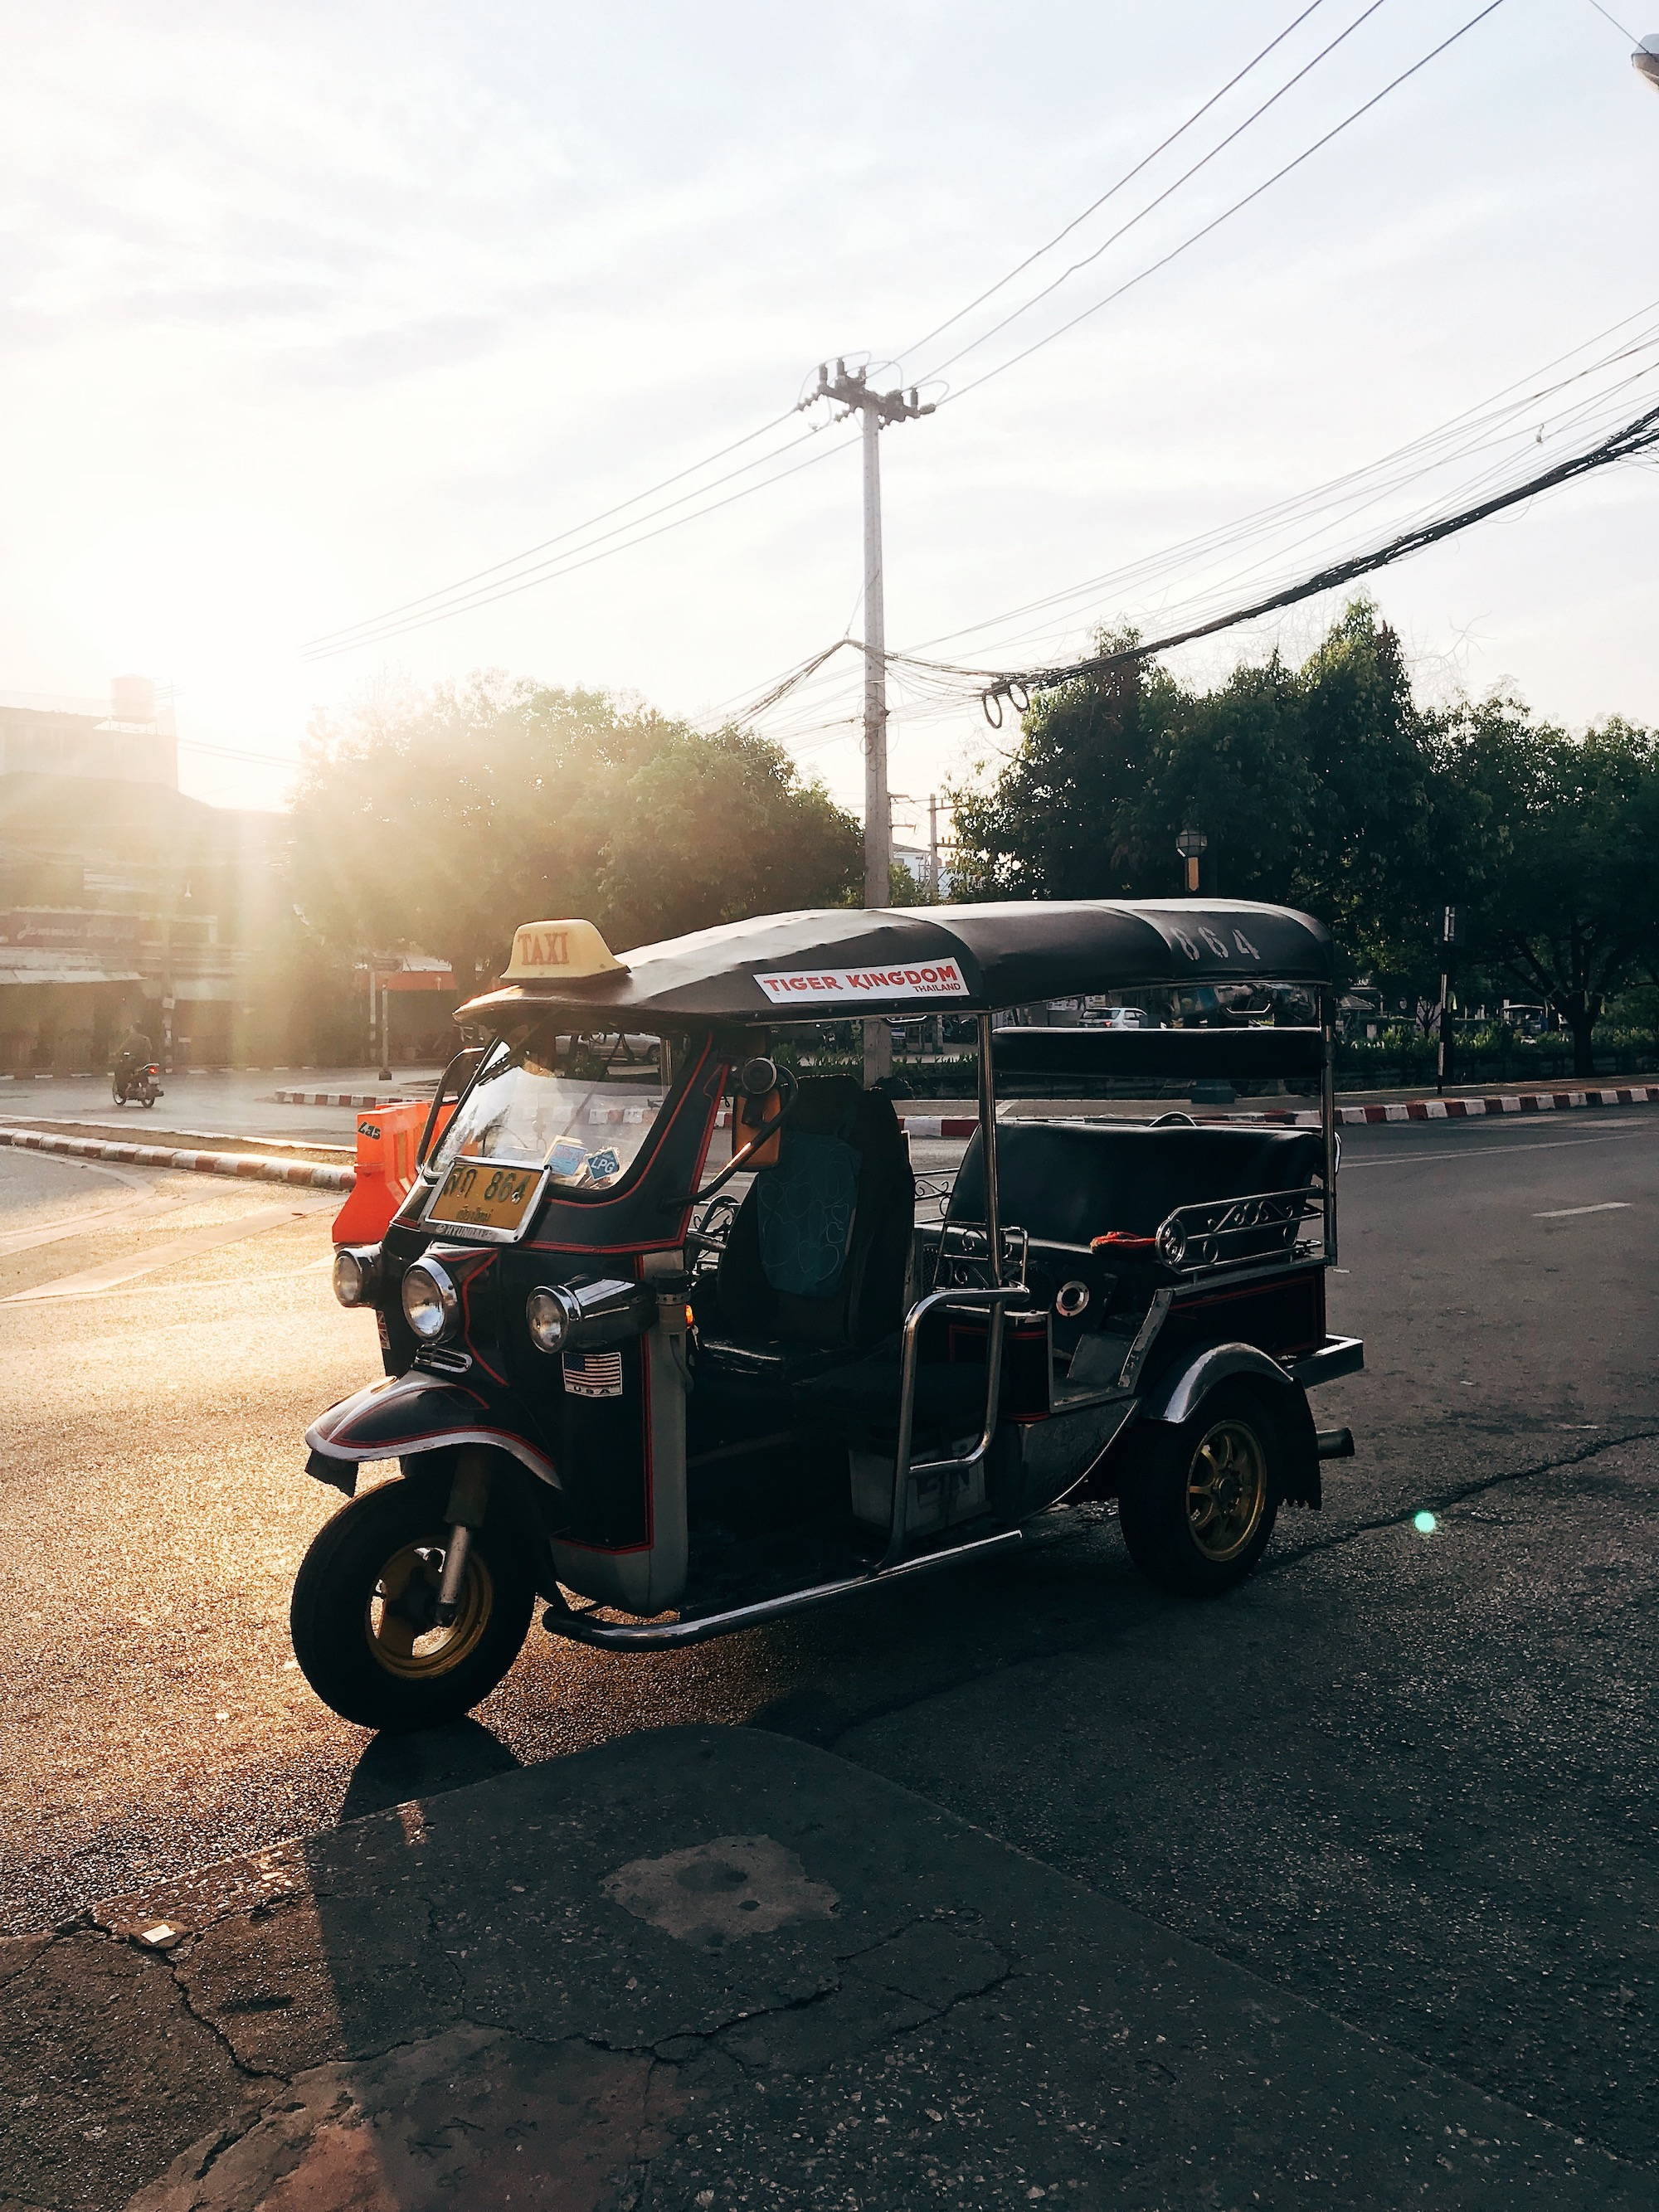 Chiang Mai Thailand Travel Guide - Claire Eliza 25.JPG